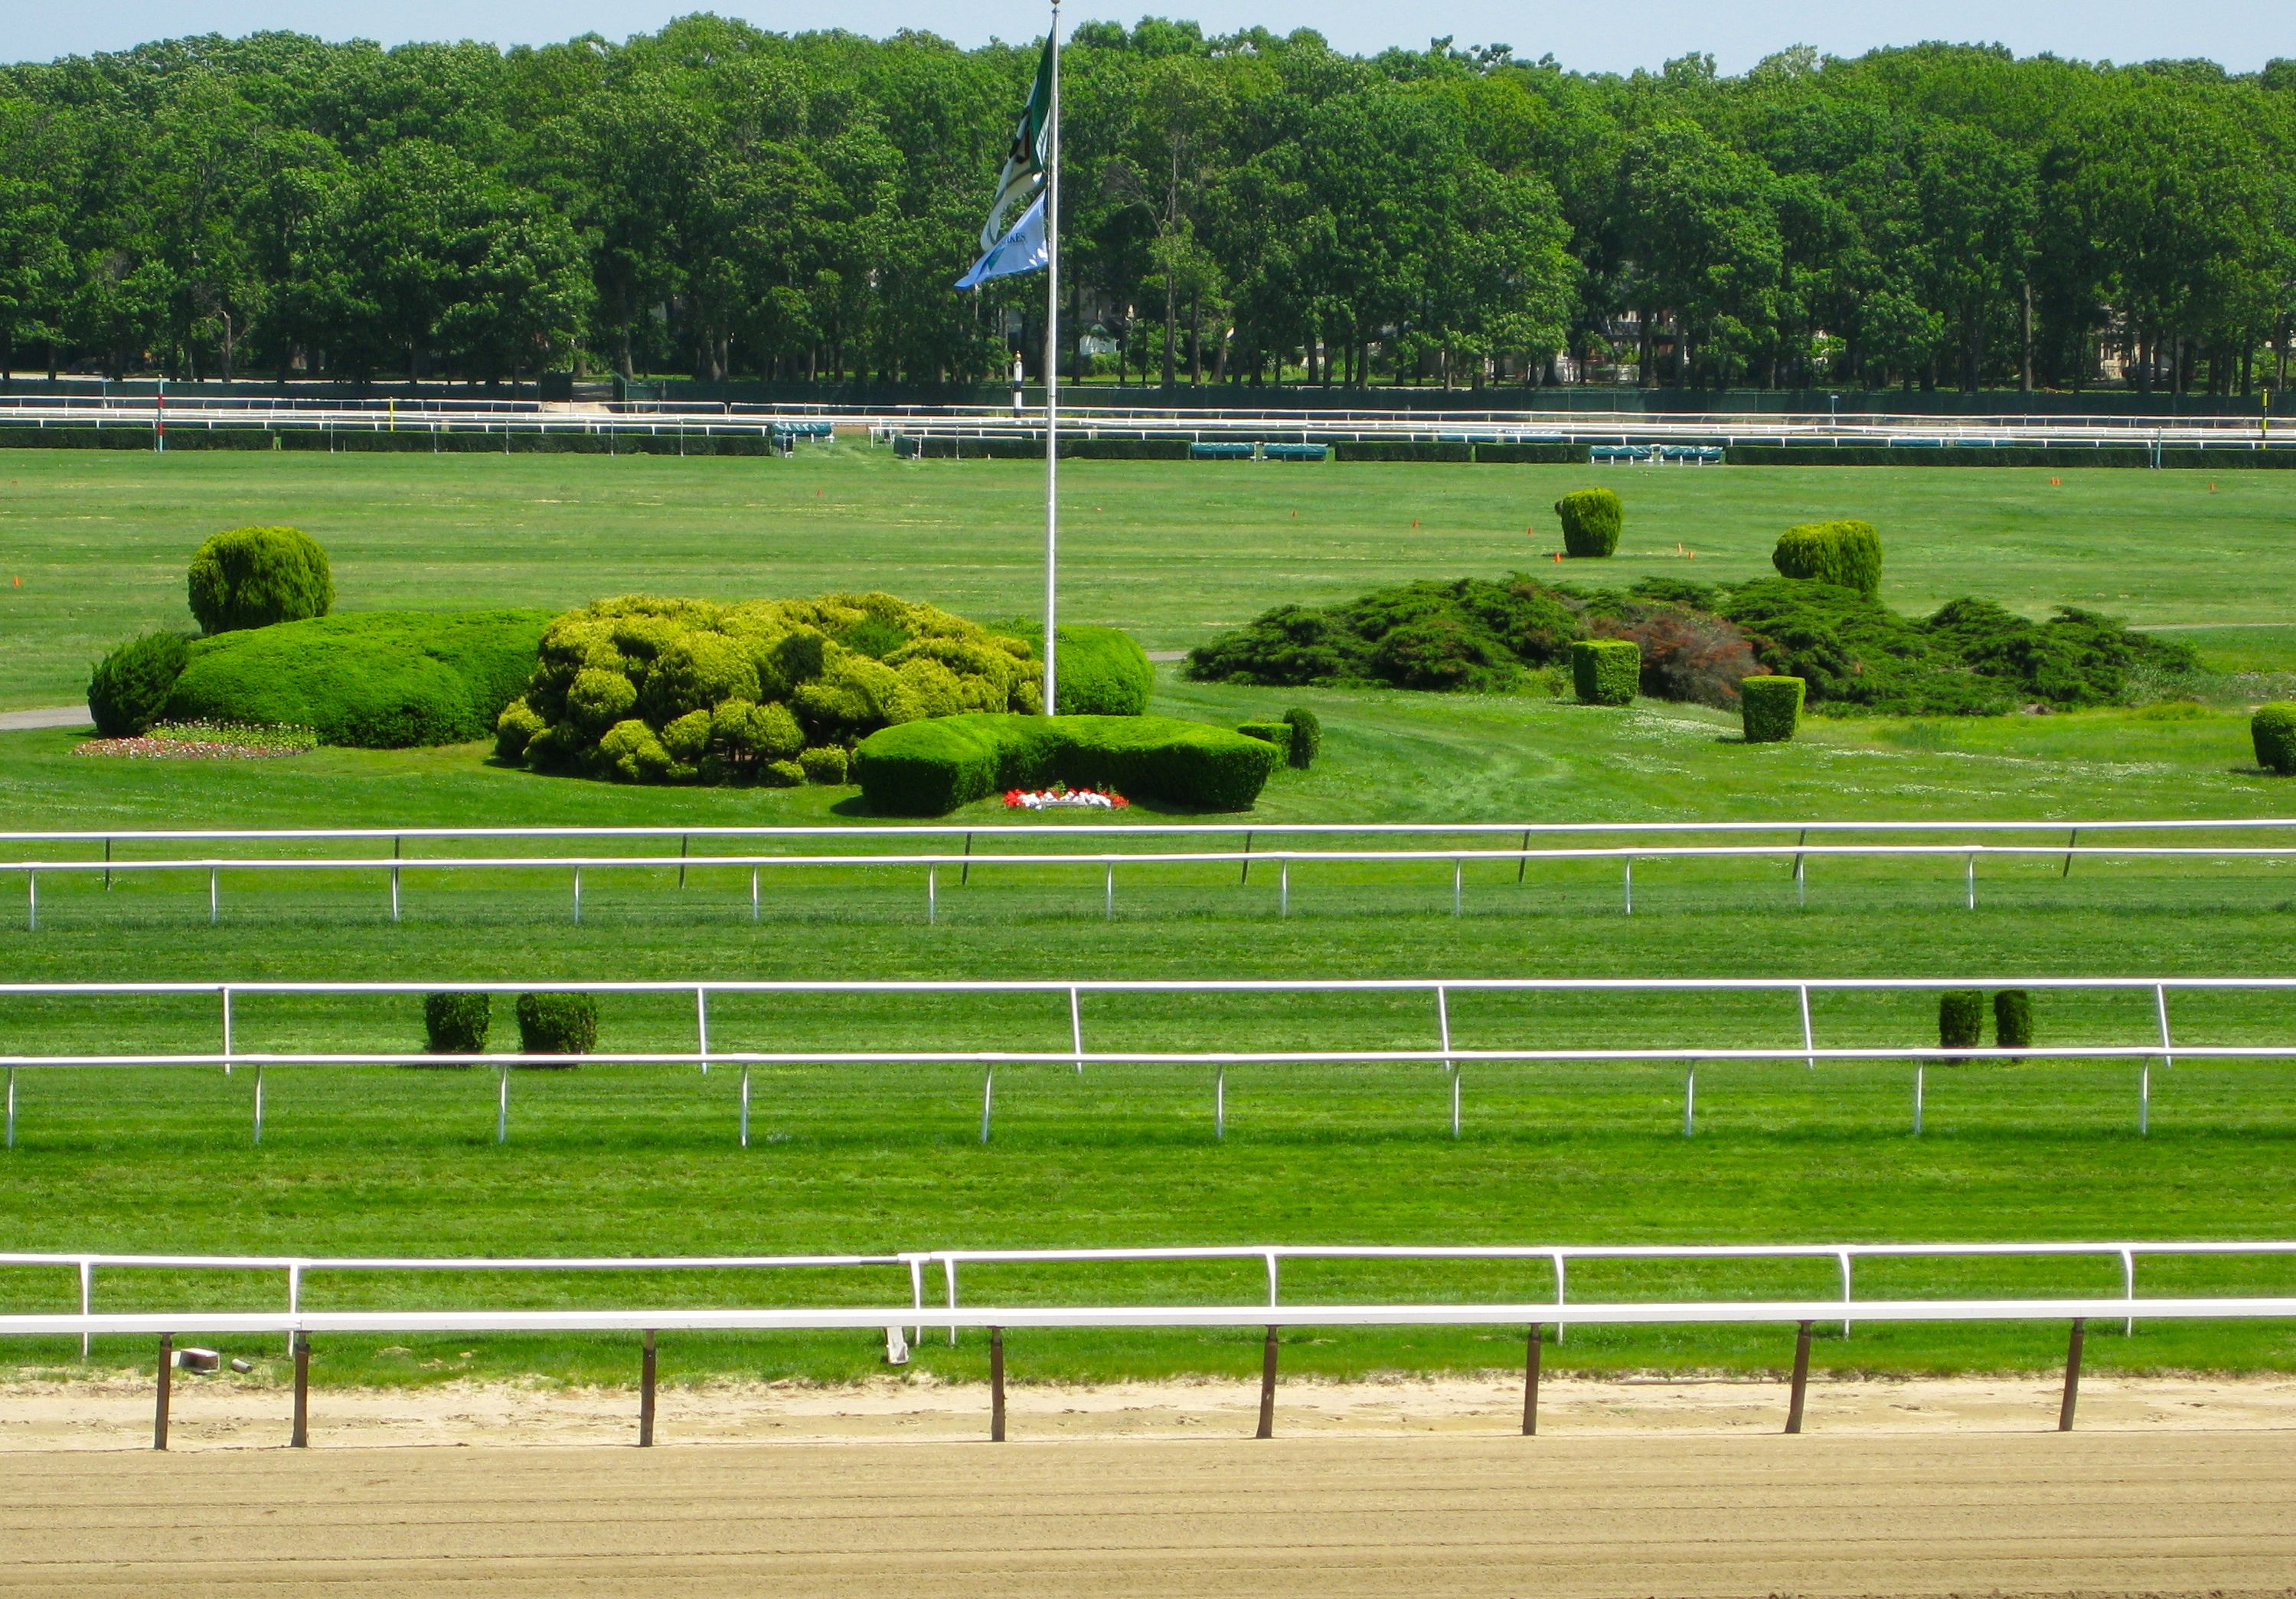 Horse race track finish line displaying 18 images for horse race track